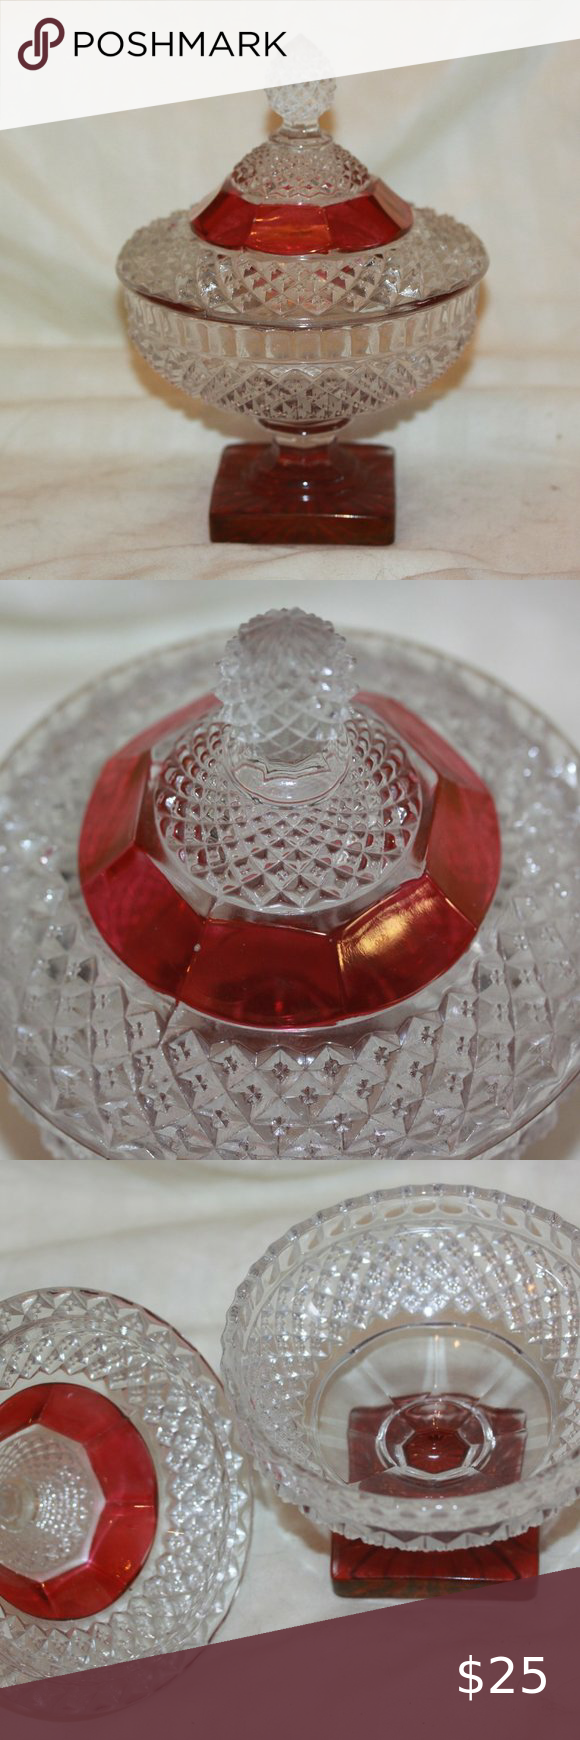 Glass Compote Set of Two Diamond Point Dishes Candy Dish